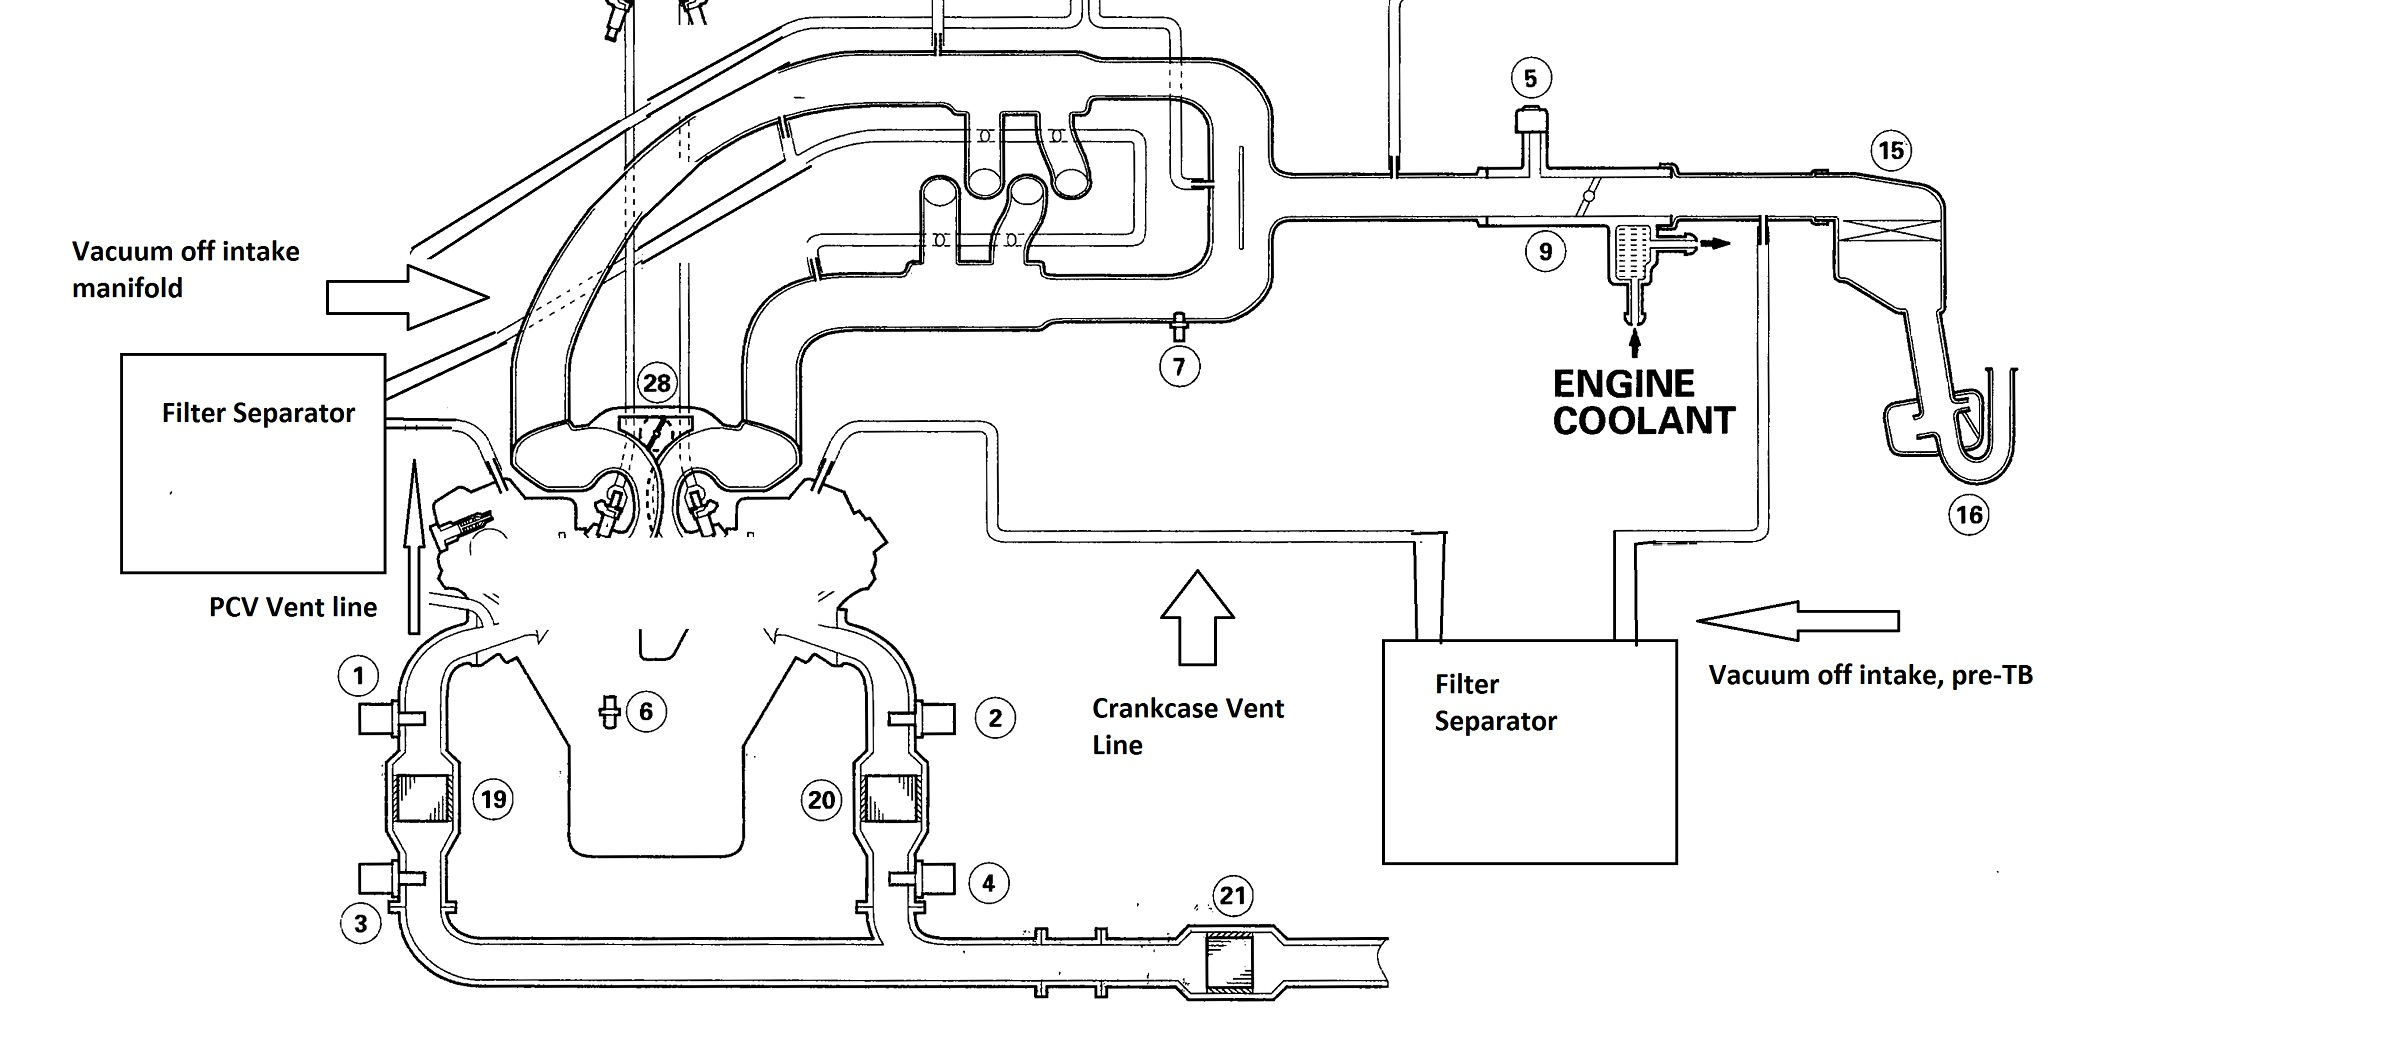 Chevy Pcv Valve Diagram